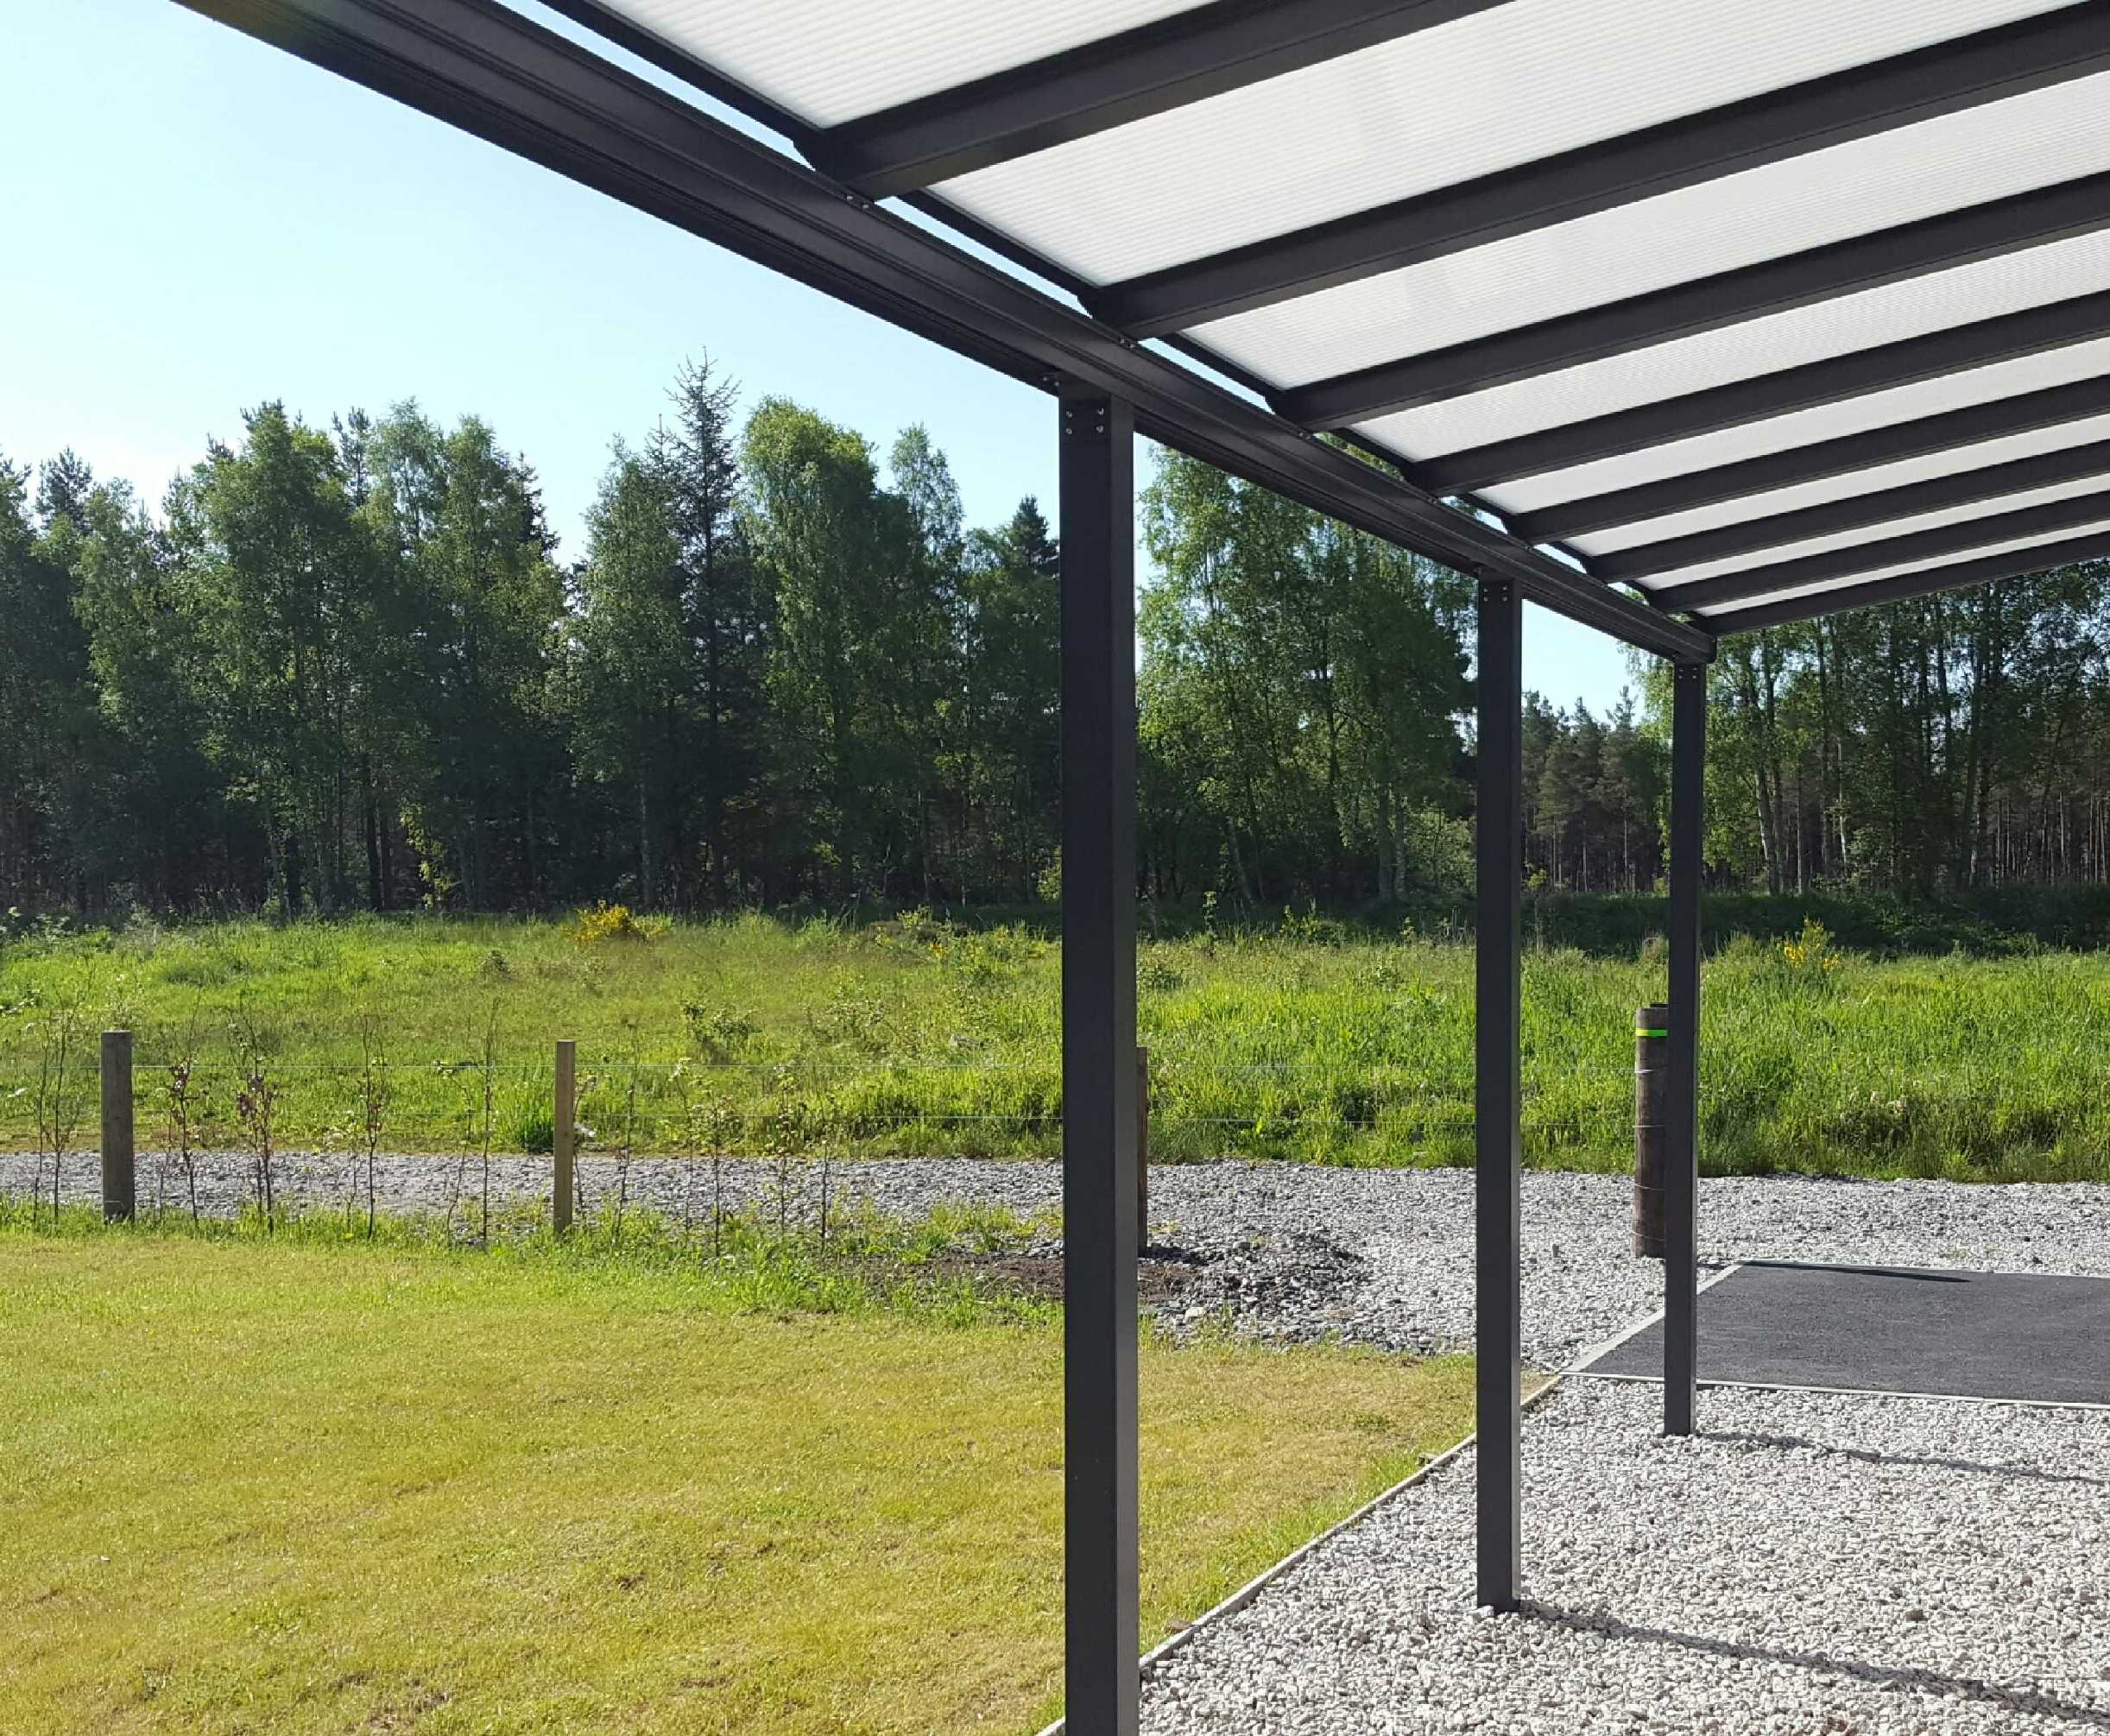 Omega Smart Lean-To Canopy, Anthracite Grey, 16mm Polycarbonate Glazing - 6.0m (W) x 4.0m (P), (3) Supporting Posts